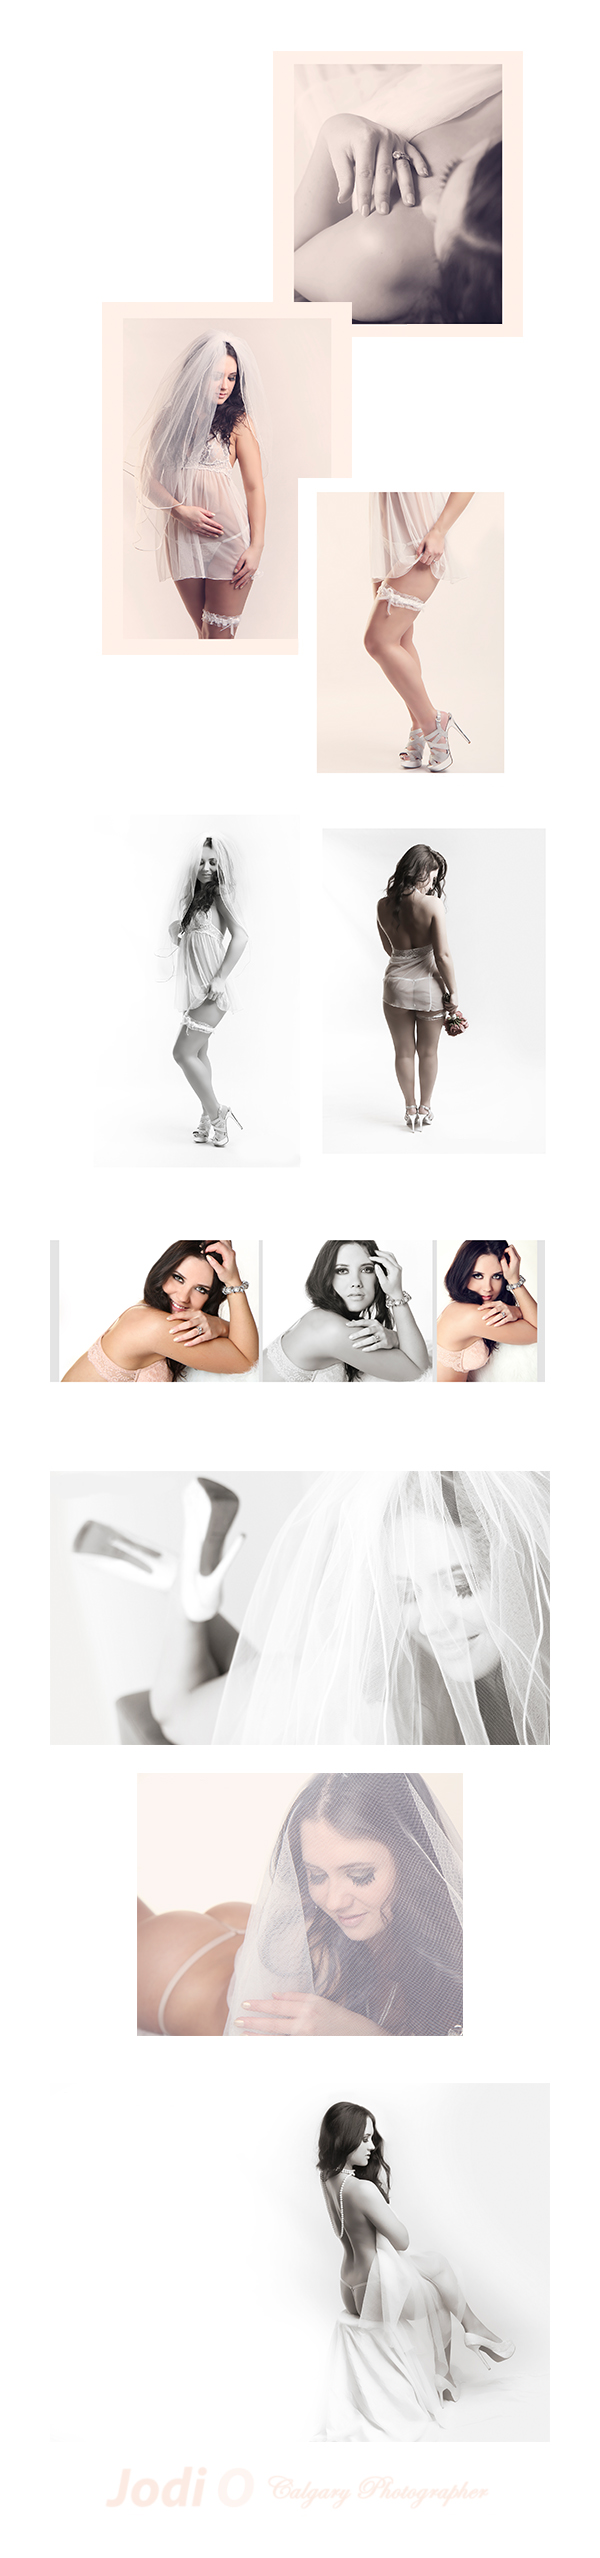 A-Calgary-Bridal-Boudoir-Photography-Studio-Packages